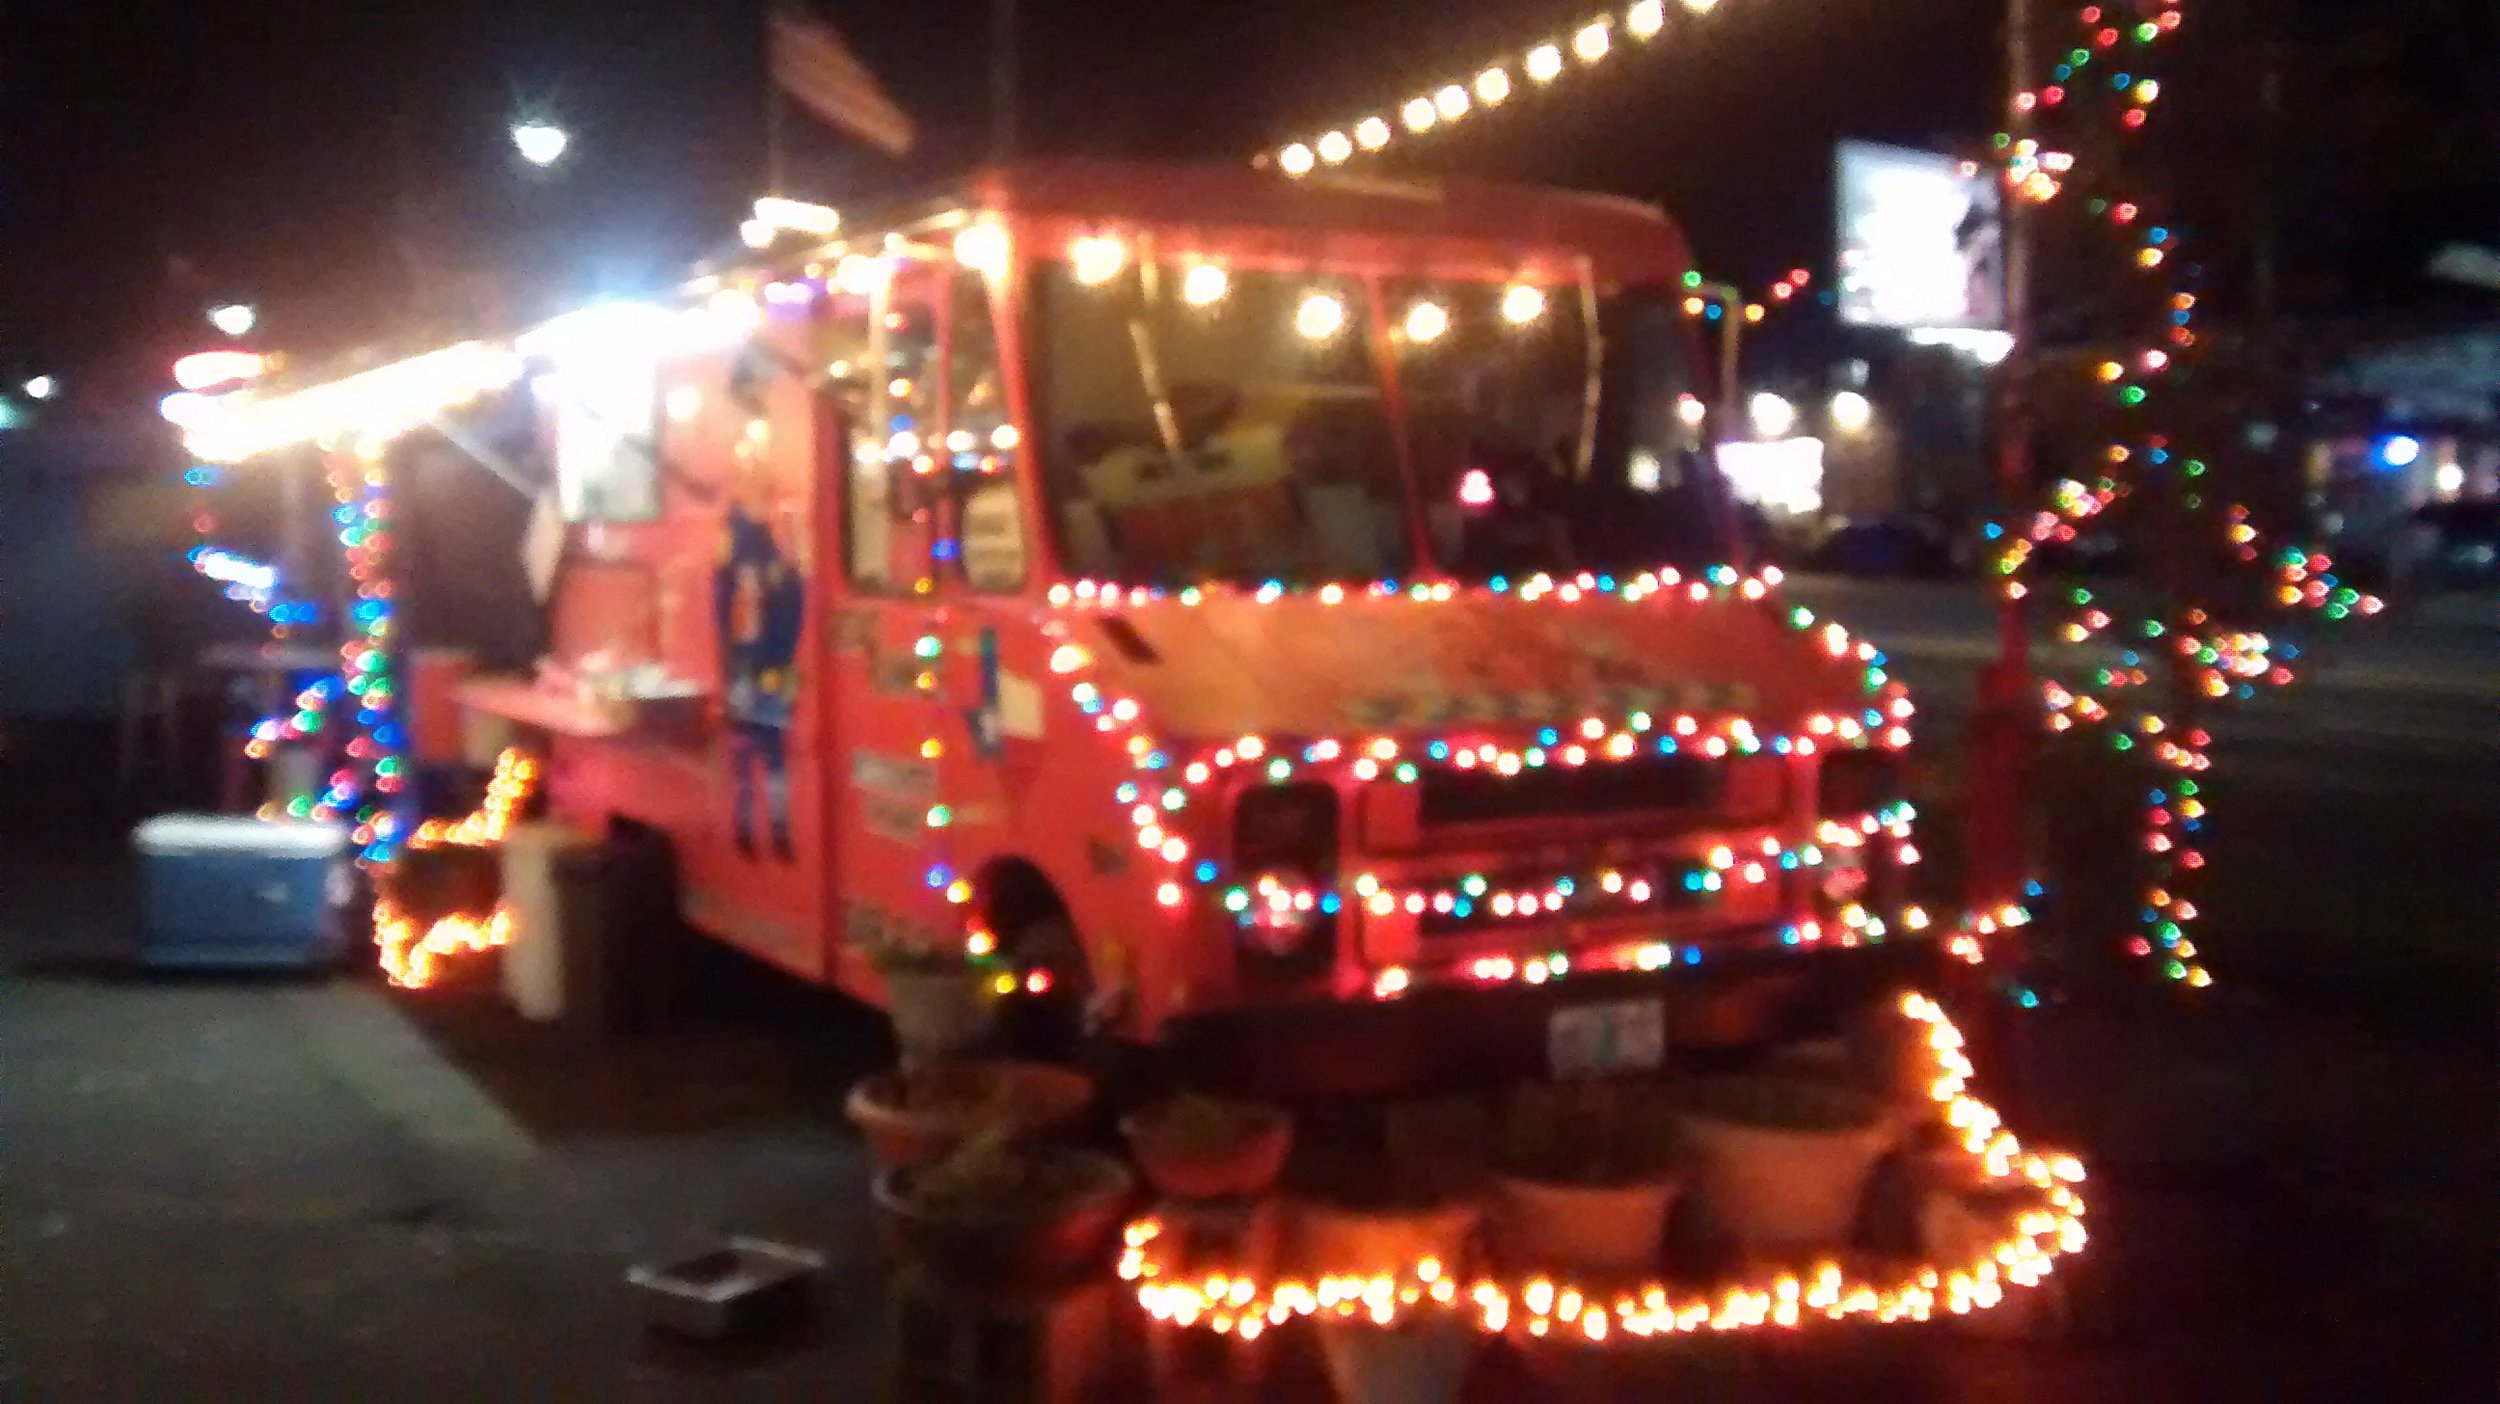 Portland OR food truck at Christmas, 2016